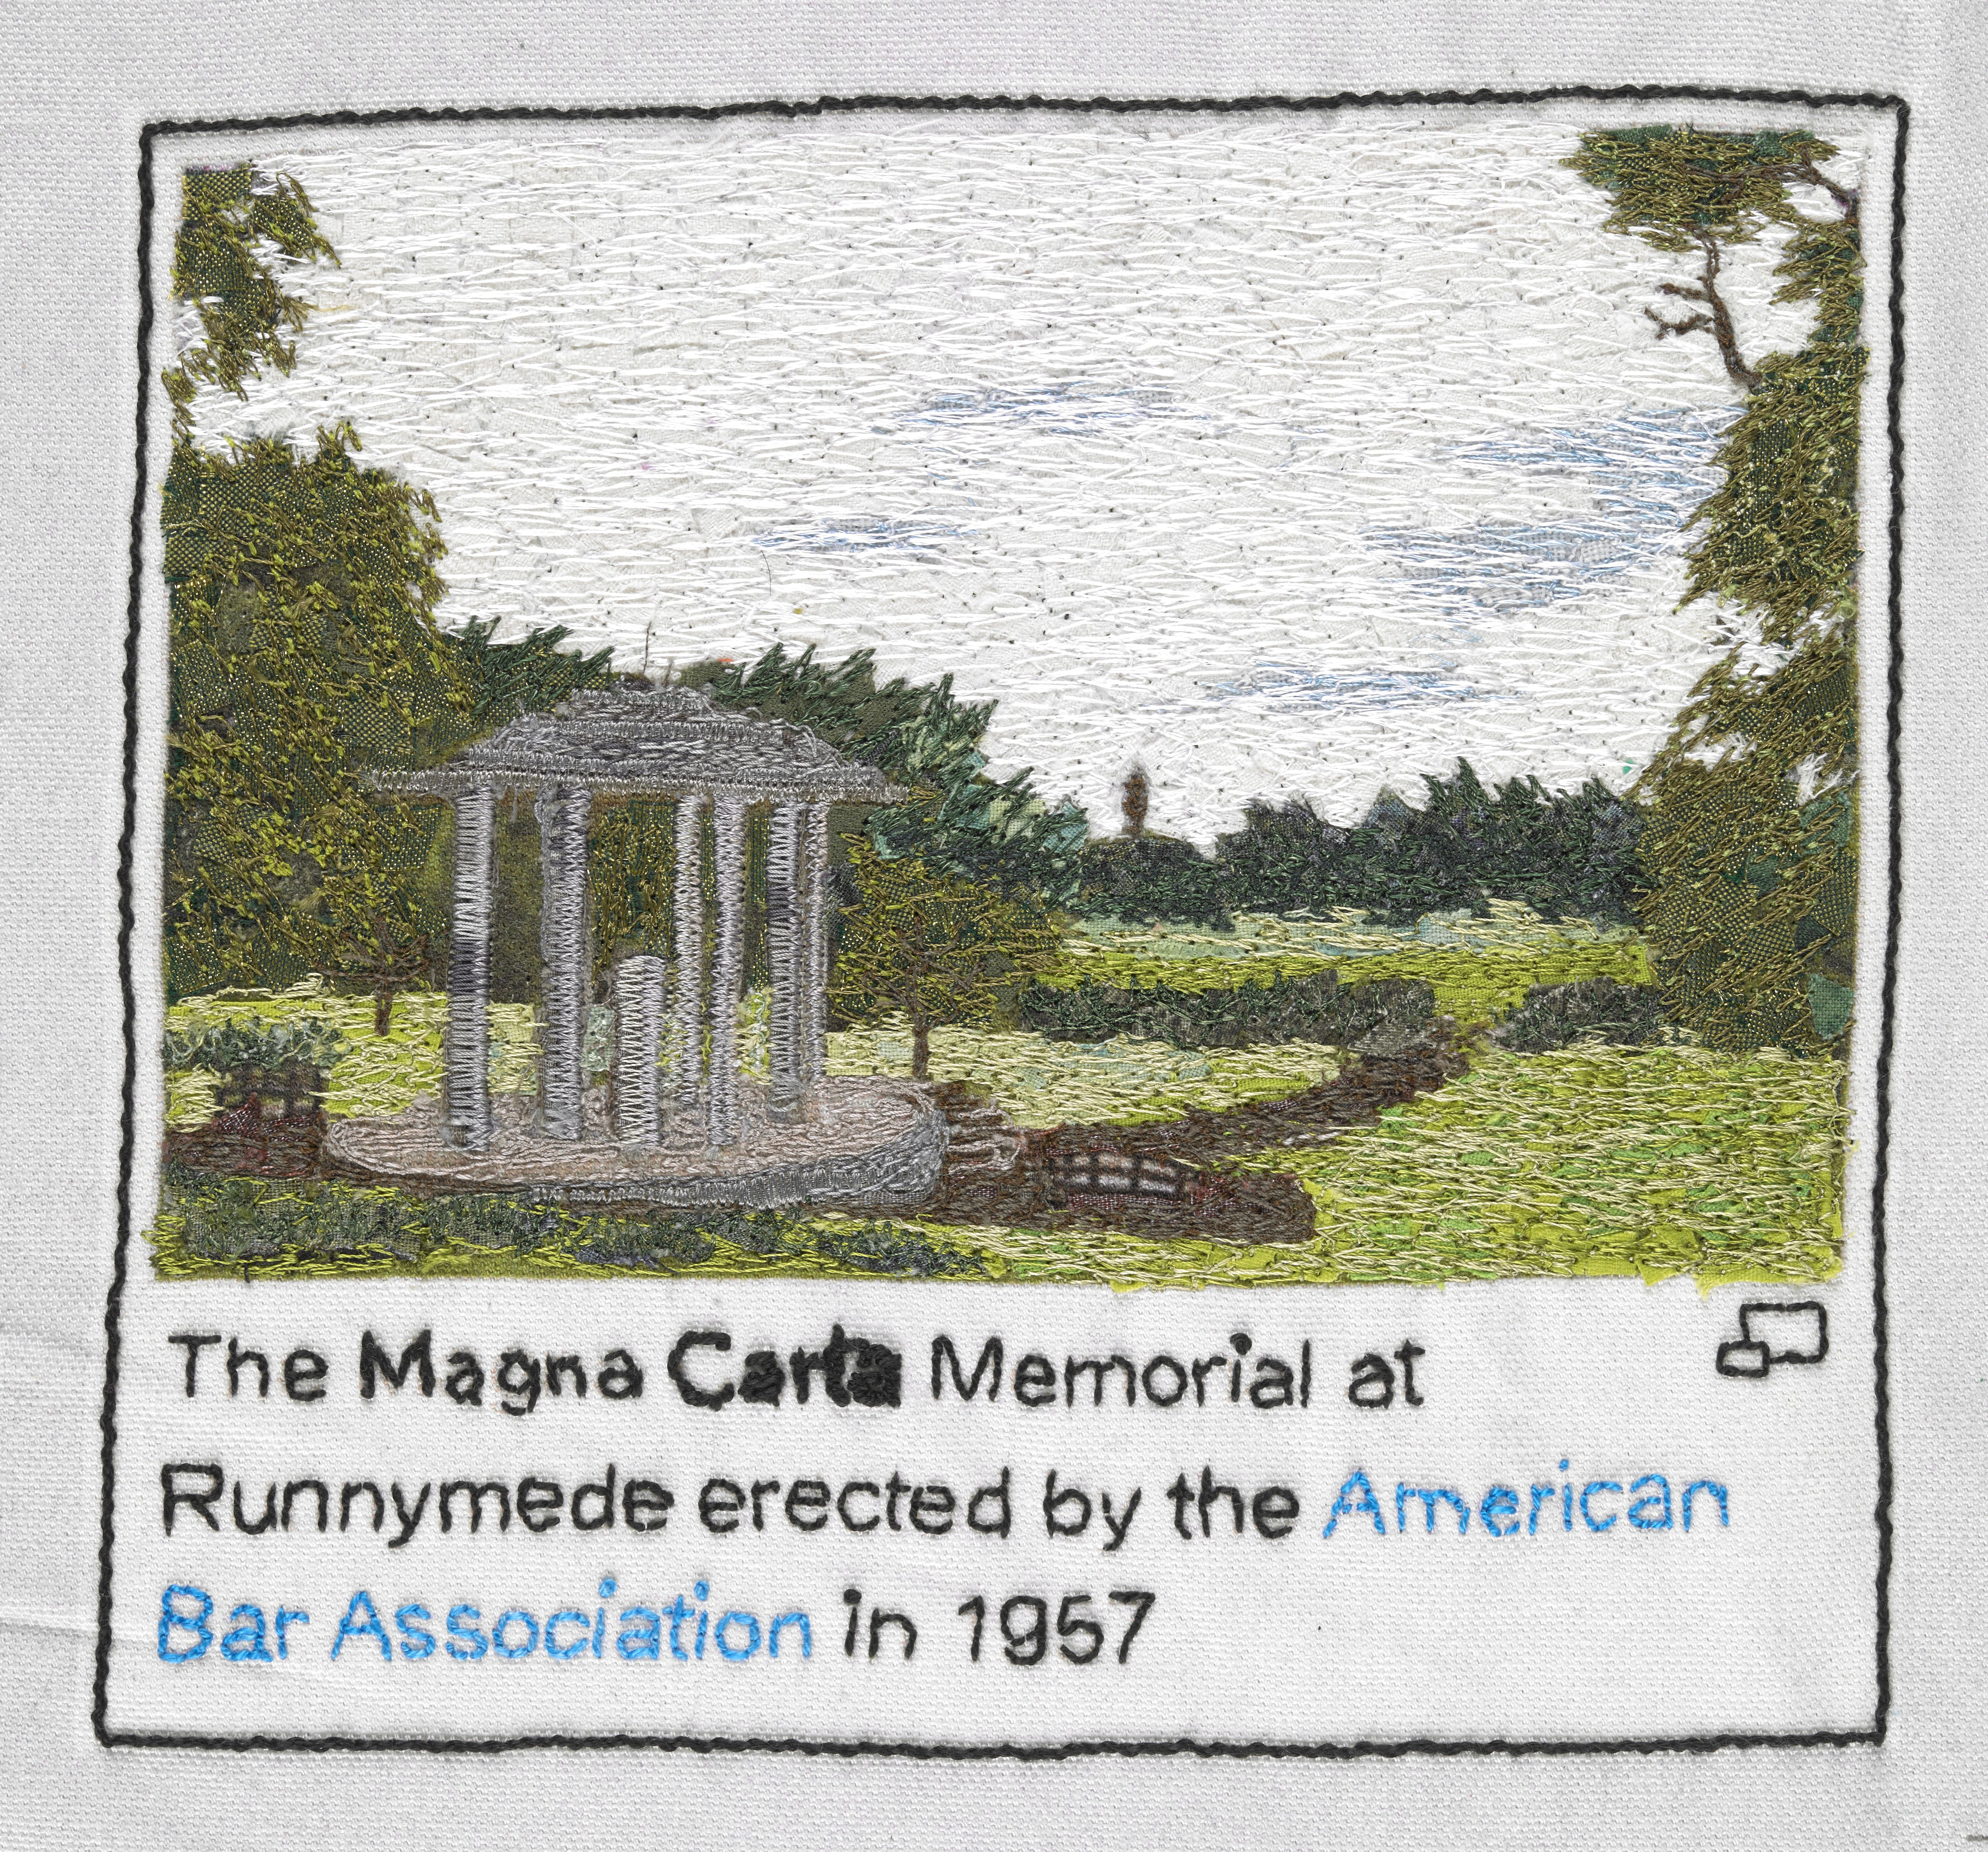 Magna Carta Memorial at Runnymede, stitched by Sian Kibblewhite, Embroiderers' Guild (West Midlands Region). Part of Cornelia Parker's Magna Carta (An Embroidery) at the British Library.